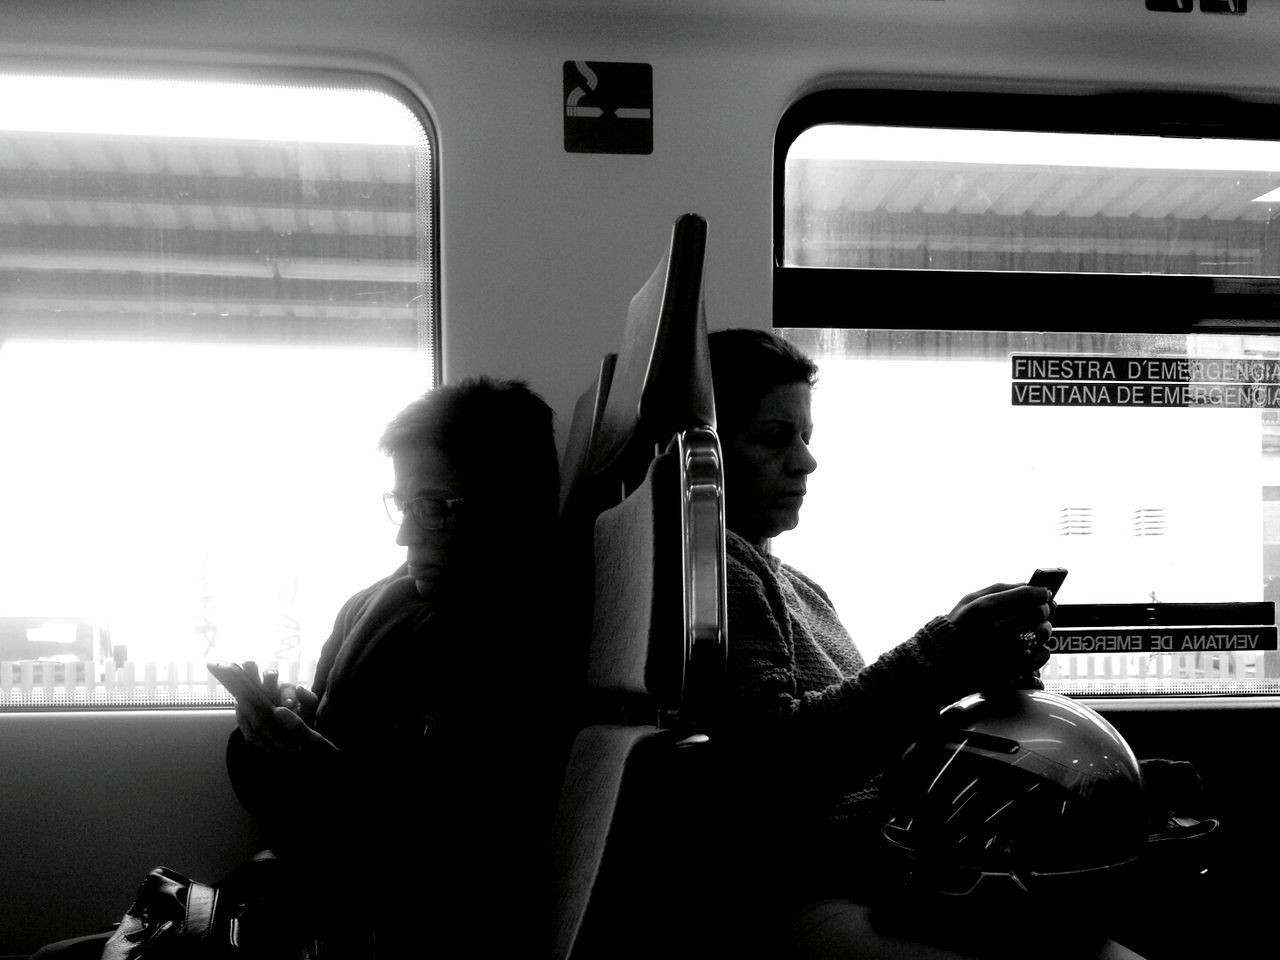 sitting, transportation, real people, public transportation, two people, mode of transport, train - vehicle, young adult, communication, casual clothing, wireless technology, travel, lifestyles, indoors, men, land vehicle, technology, holding, young men, togetherness, subway train, day, city, adult, people